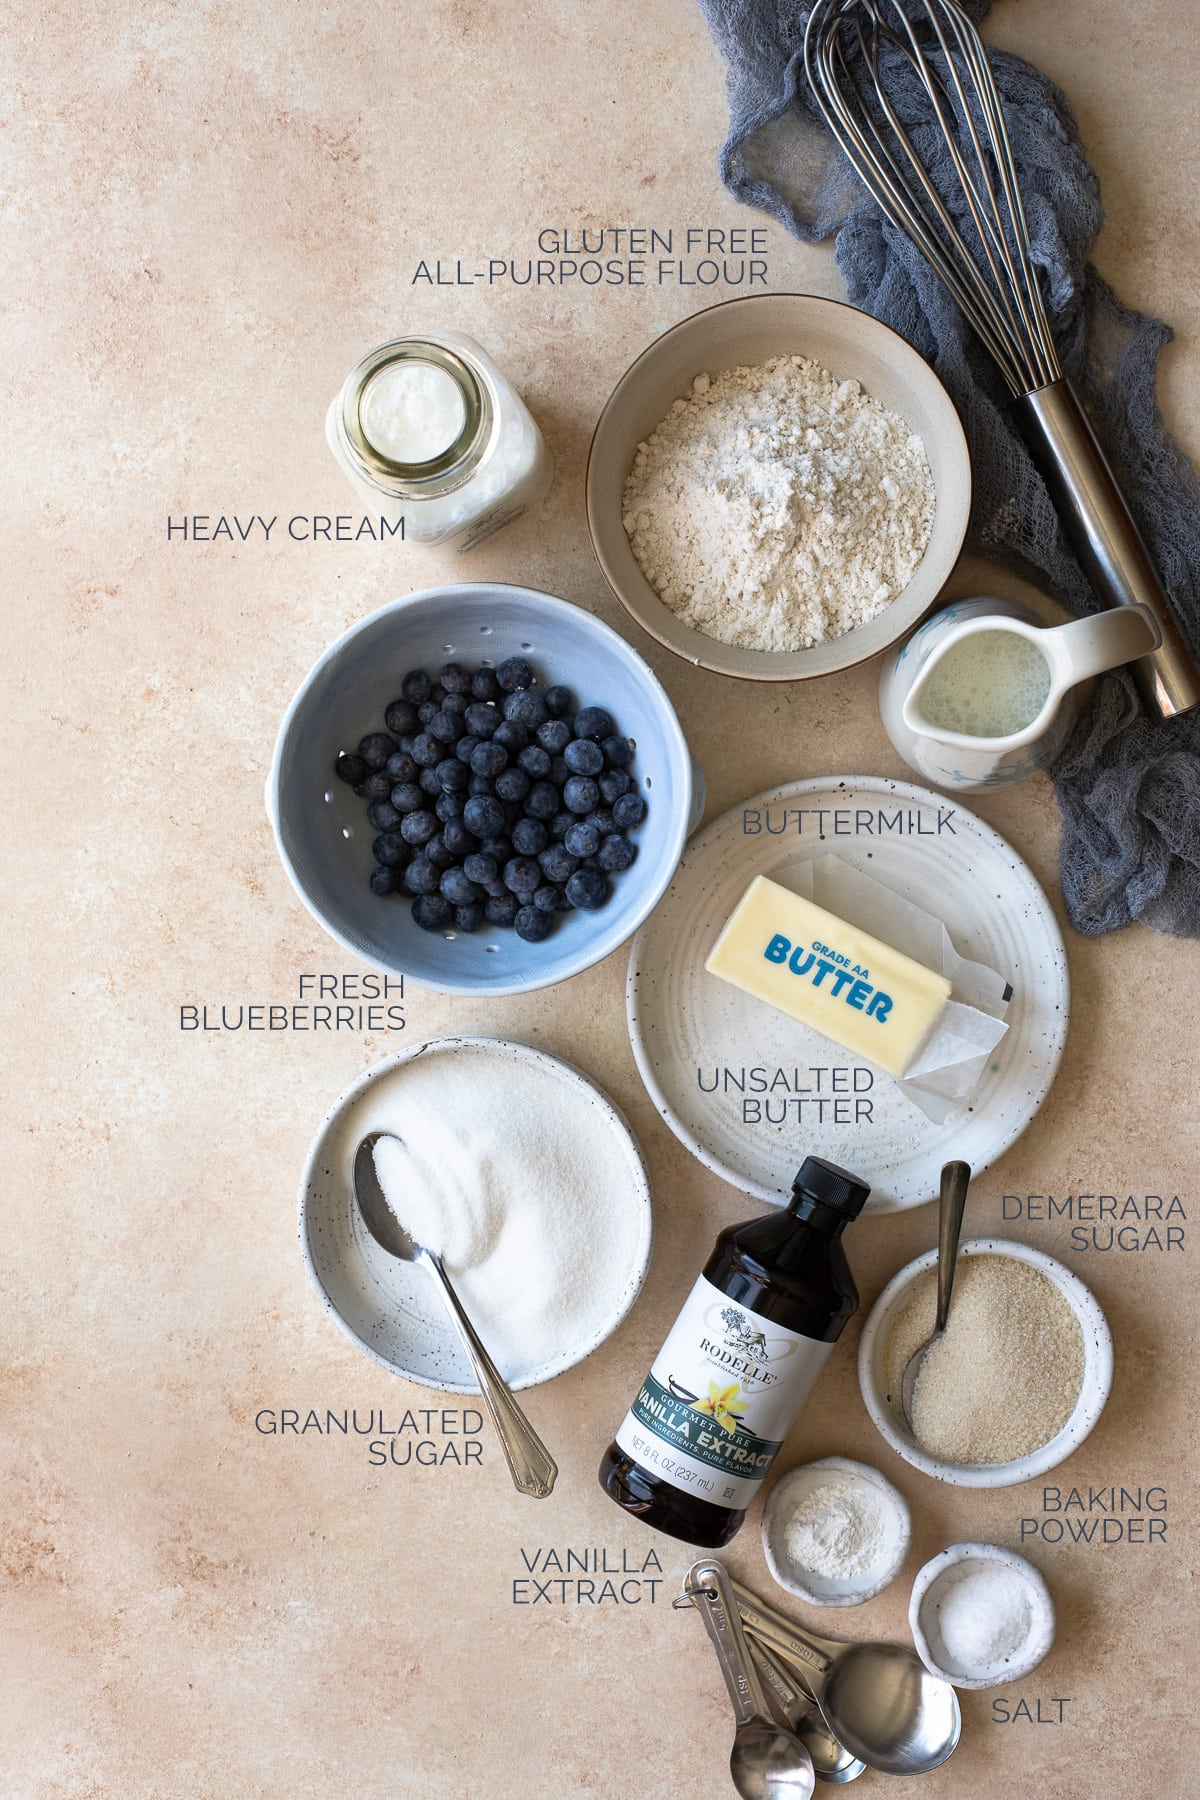 Labeled shot of ingredients needed for blueberry scones.